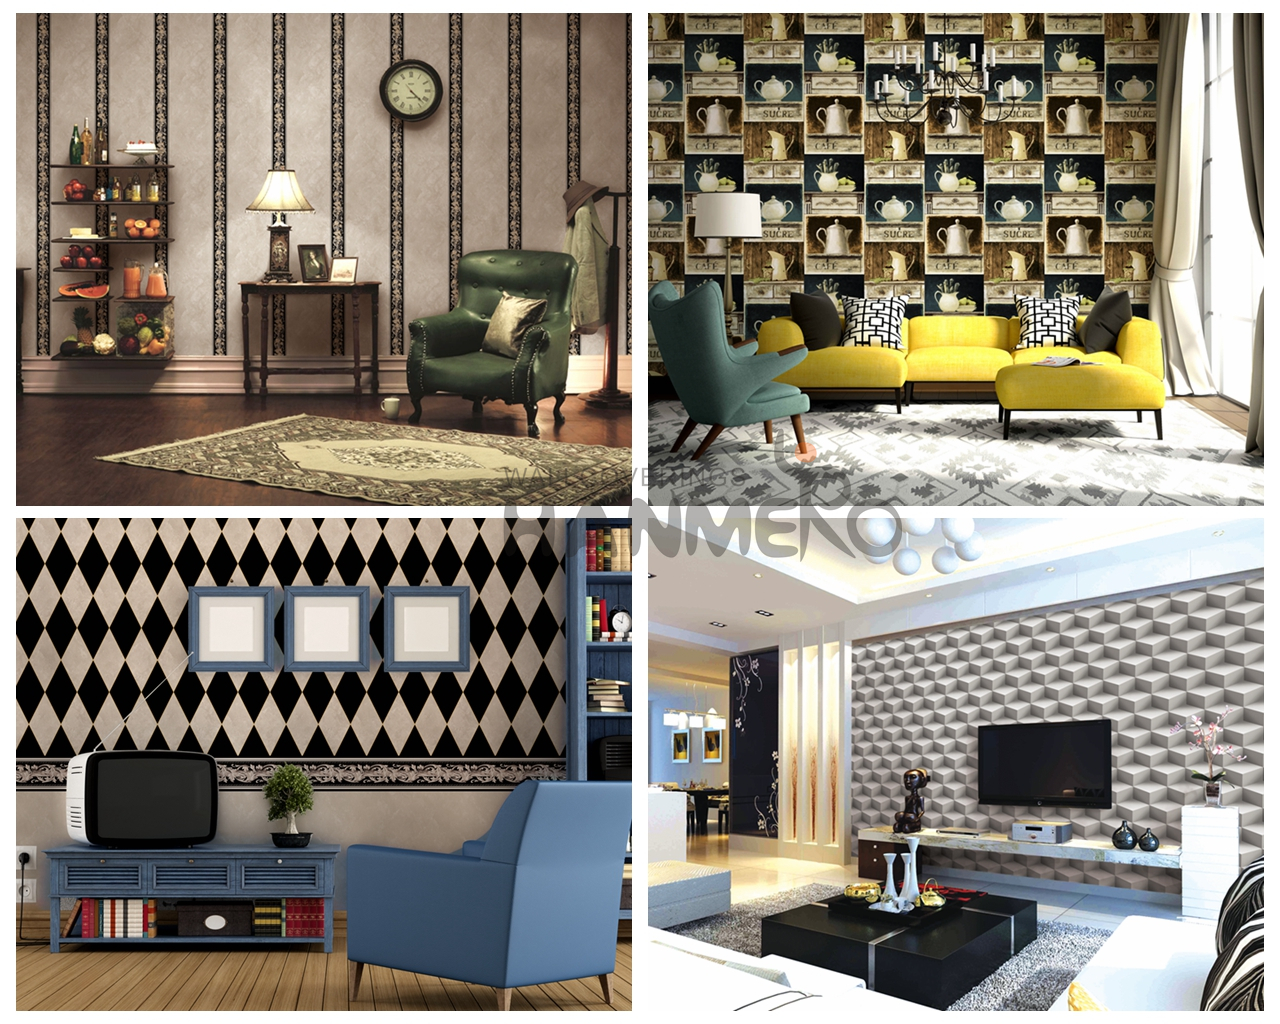 D50 PVC Wallpaper Design